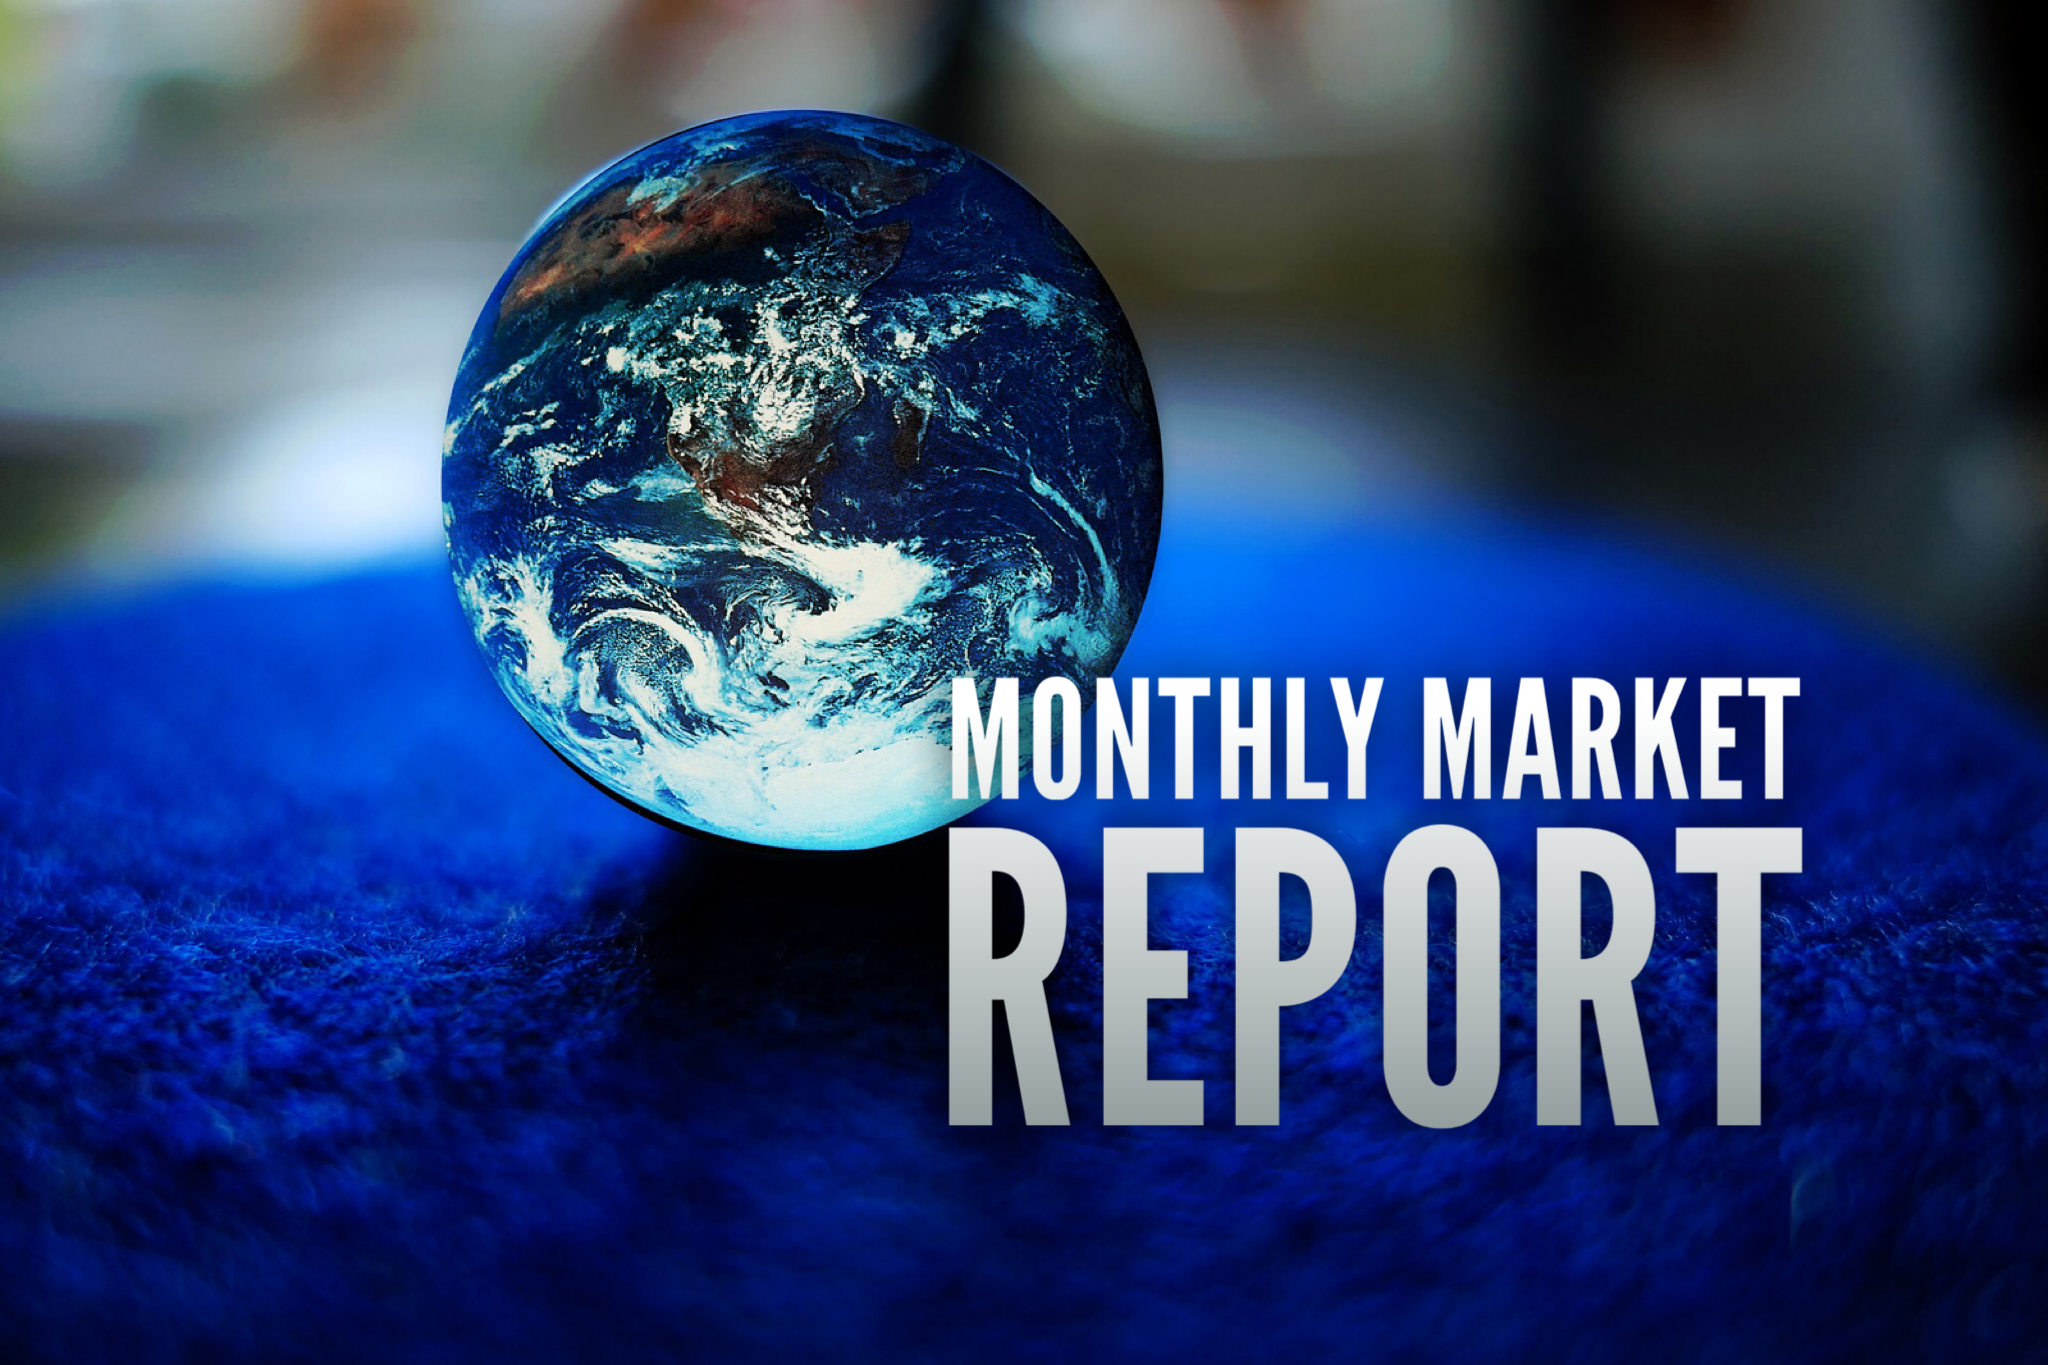 Monthly Market Report: February 2021